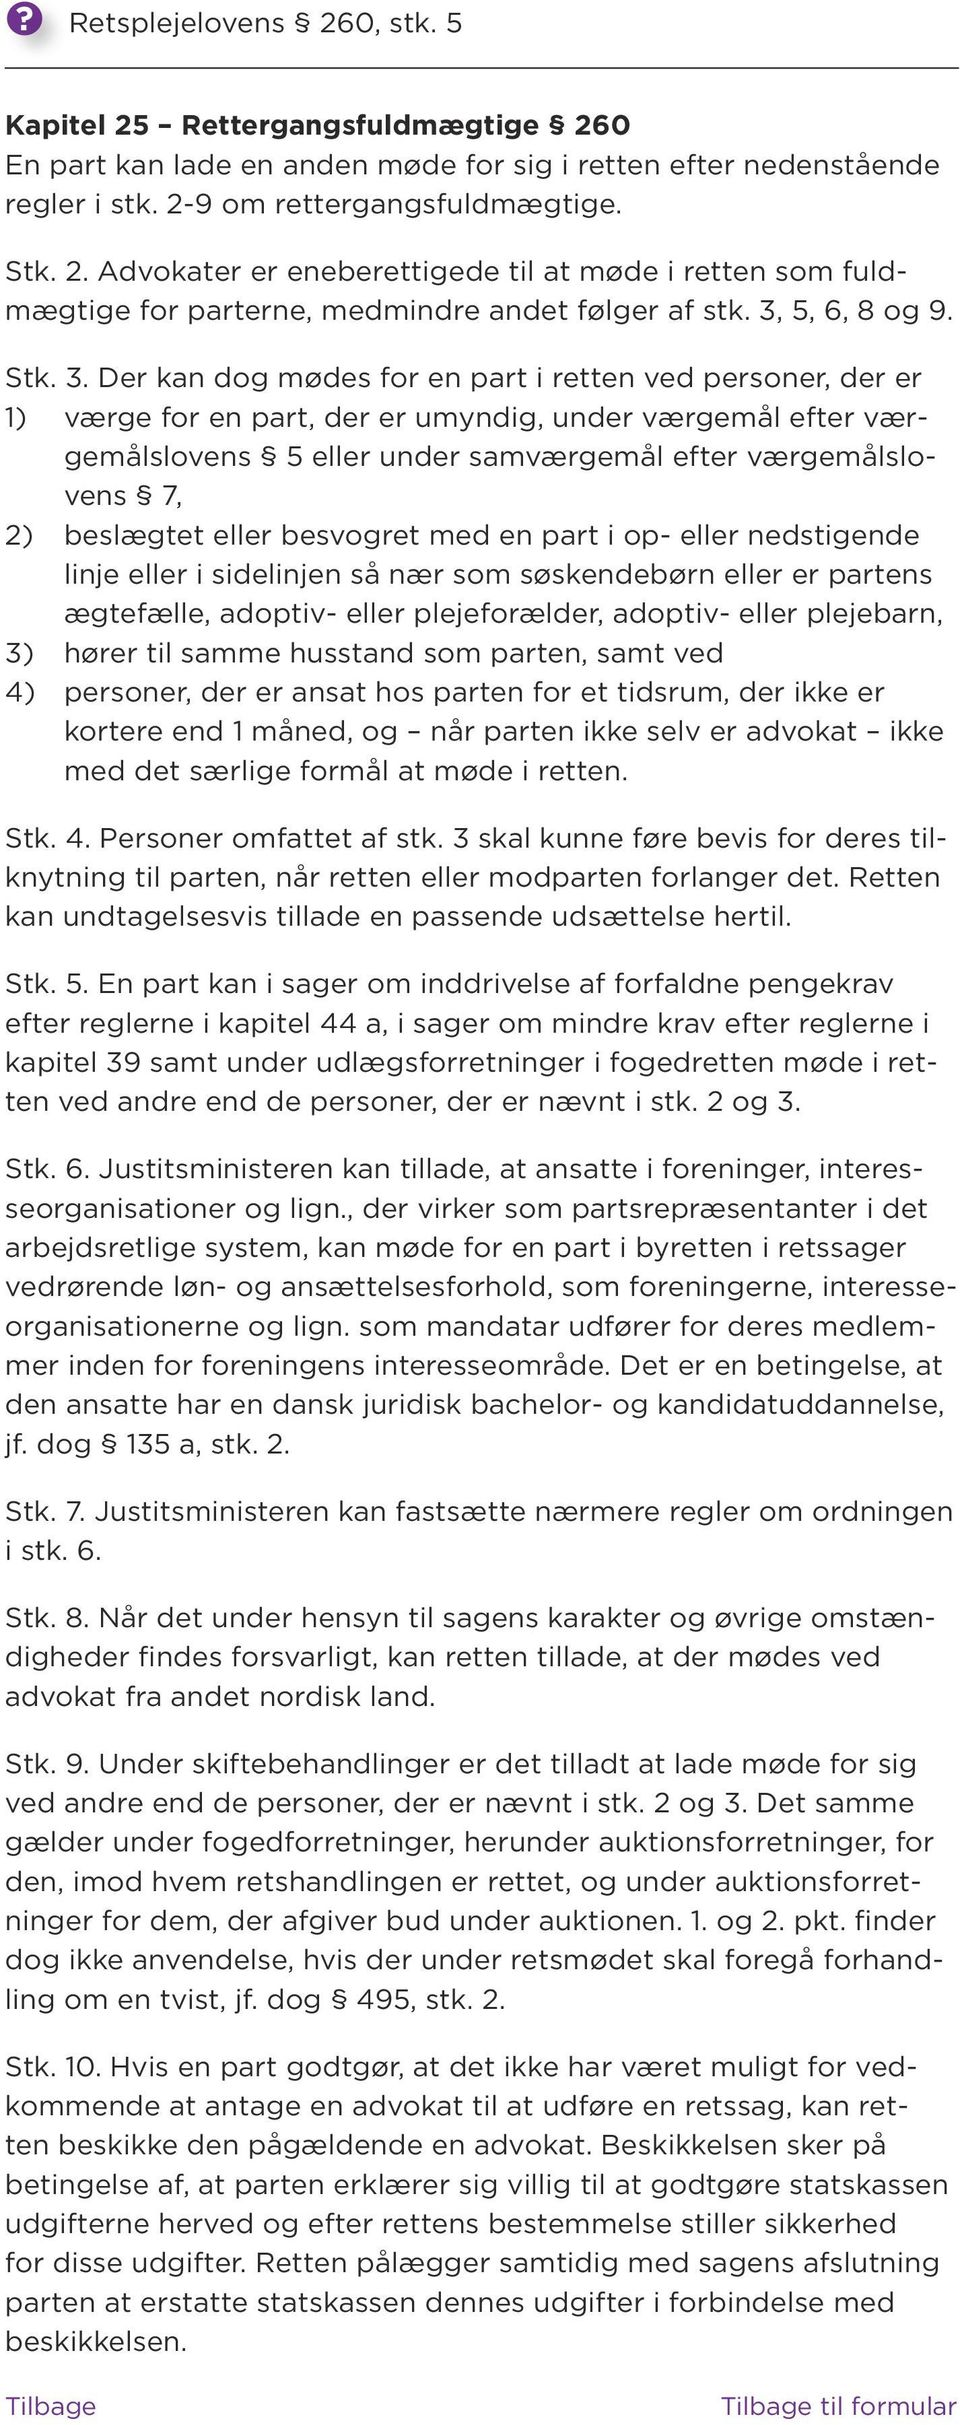 Der kan dog mødes for en part i retten ved personer, der er 1) værge for en part, der er umyndig, under værgemål efter værgemålslovens 5 eller under samværgemål efter værgemålslovens 7, 2) beslægtet